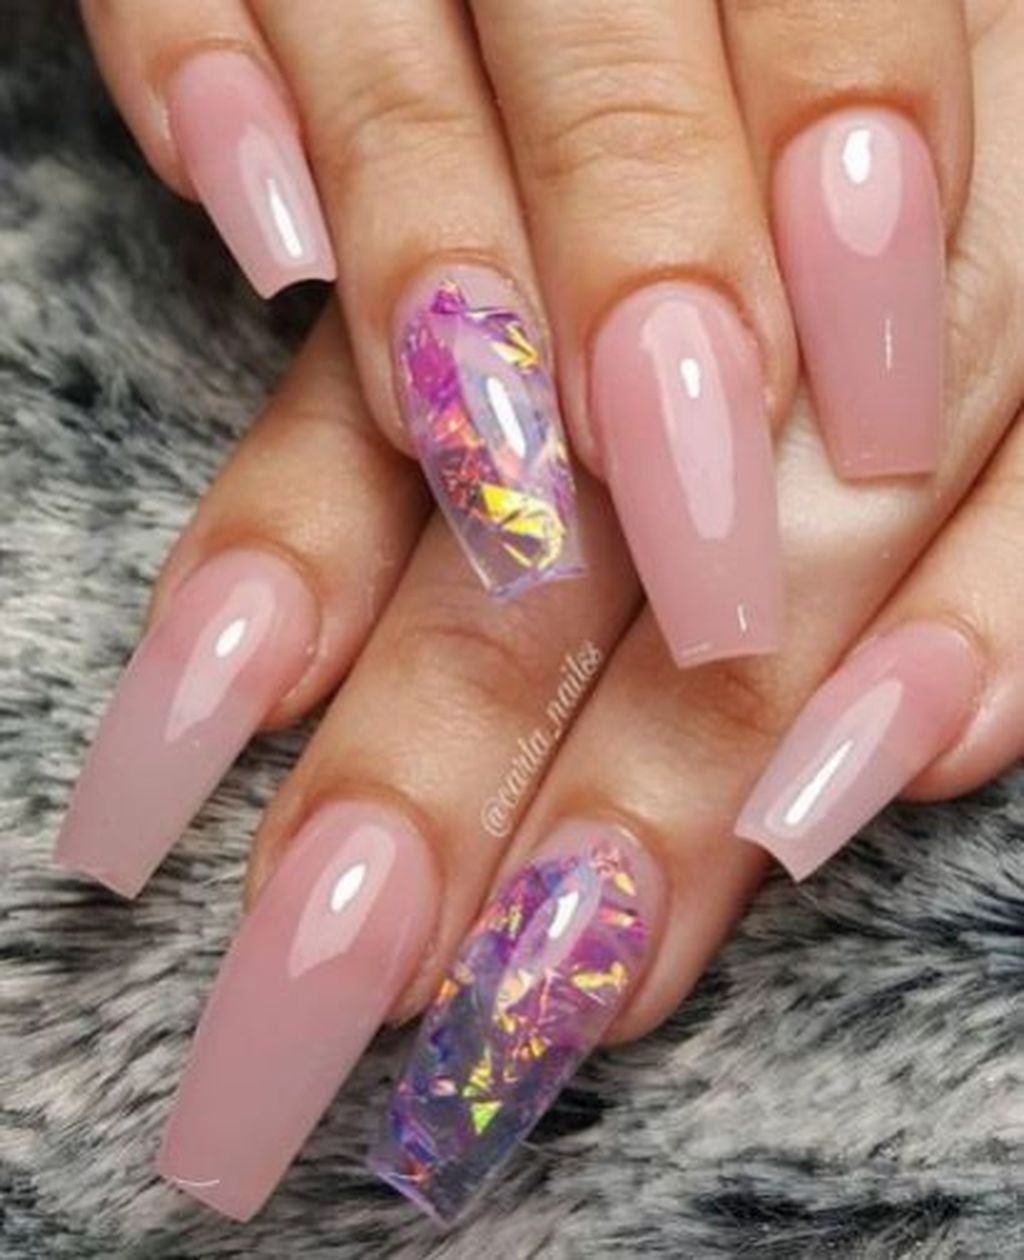 39 Stylish Acrylic Coffin Nail Arts Design For Summer Pink